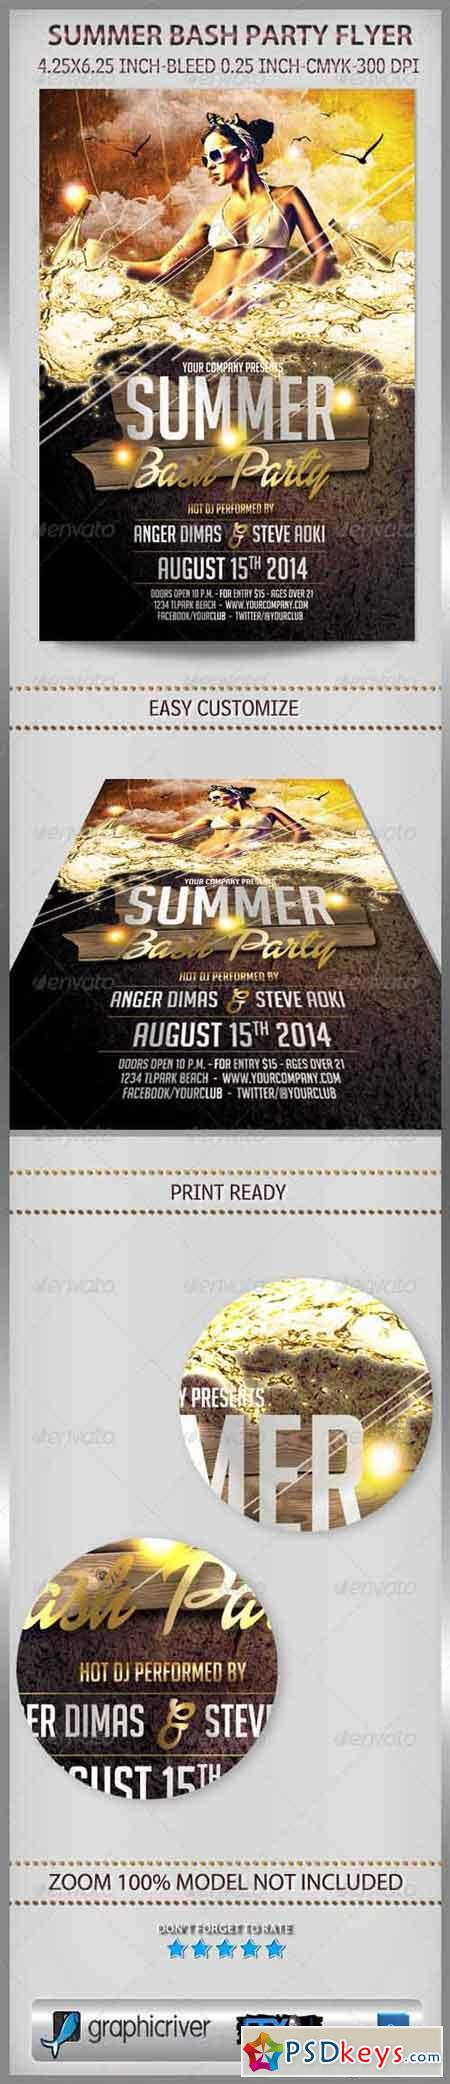 Summer Bash Party Flyer 6887251